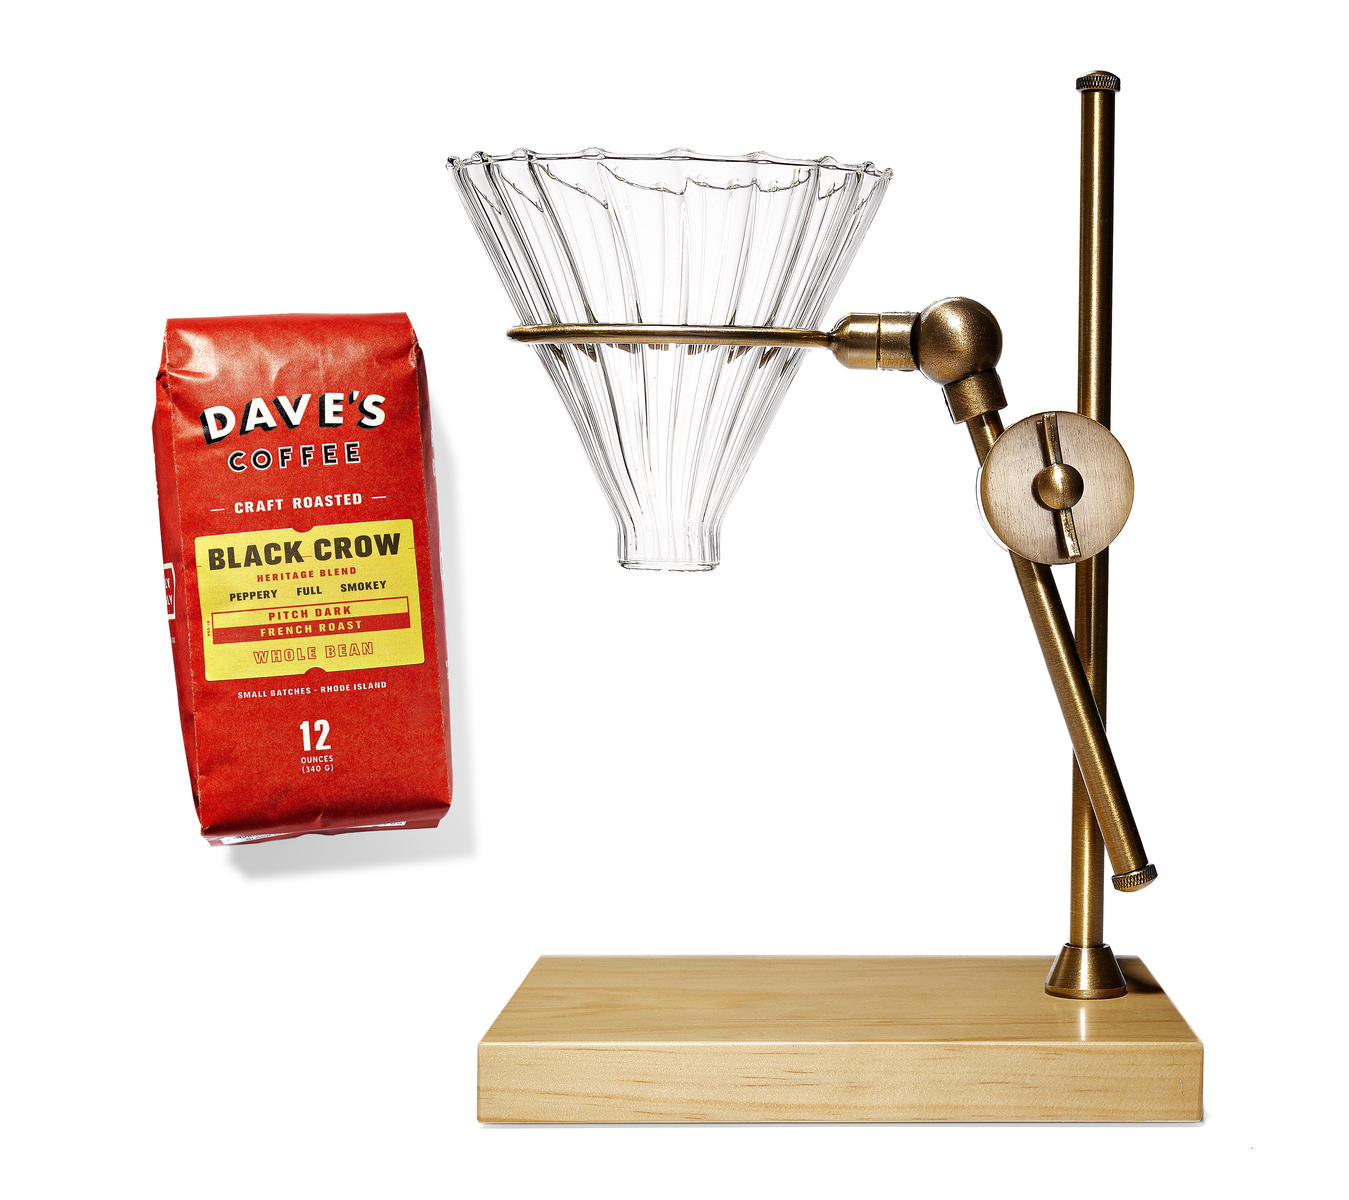 Father's Day Brass Pour Over Coffee Dripper Stand and Dave's Coffee Black Crow Beans